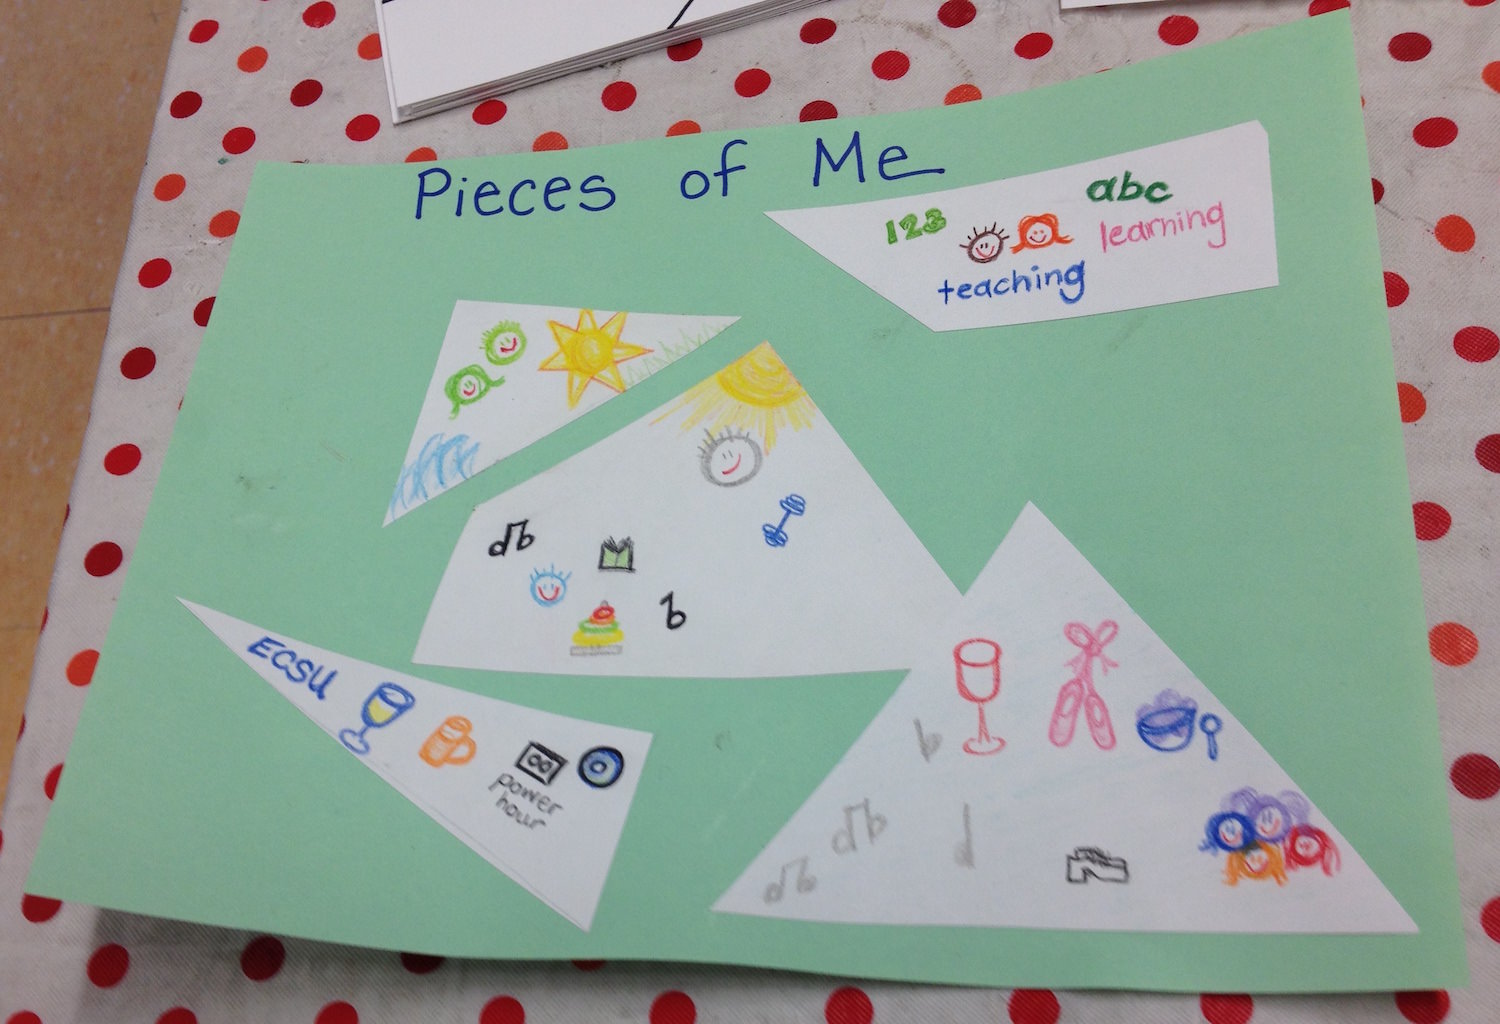 teacher circle pieces of me activity